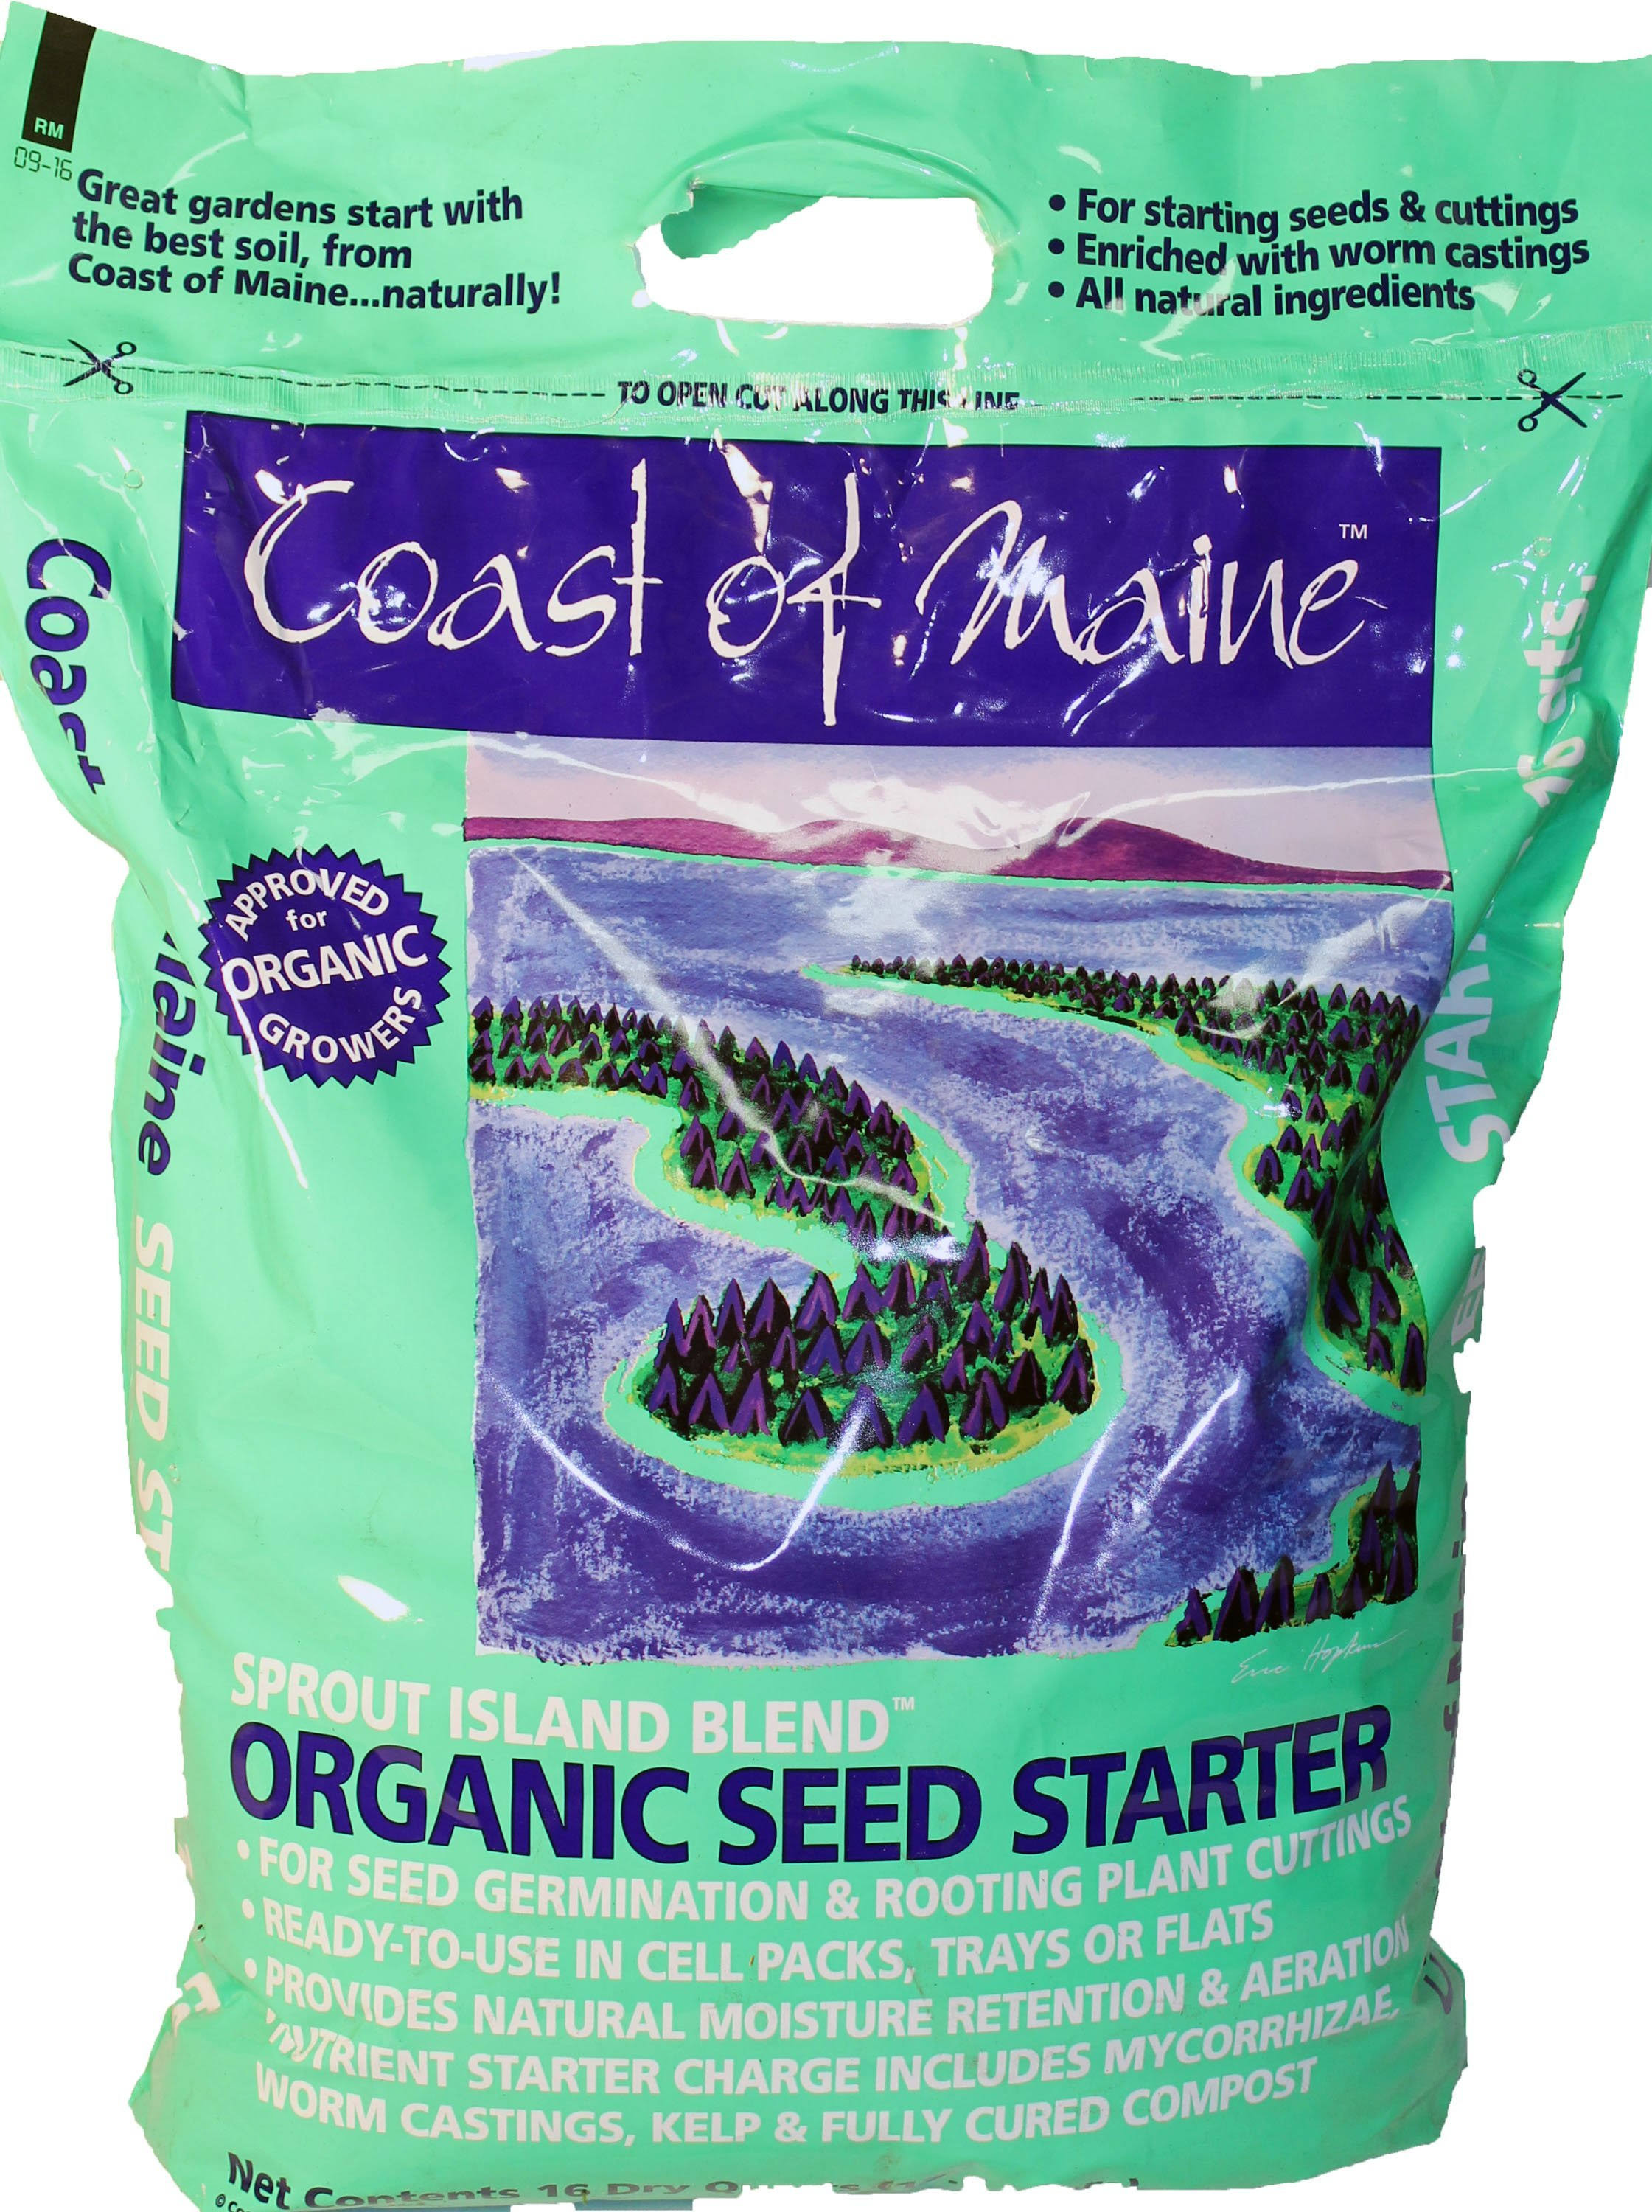 Coast of Maine Organic Seed Starter - Sprout Island Blend, 15.5lbs